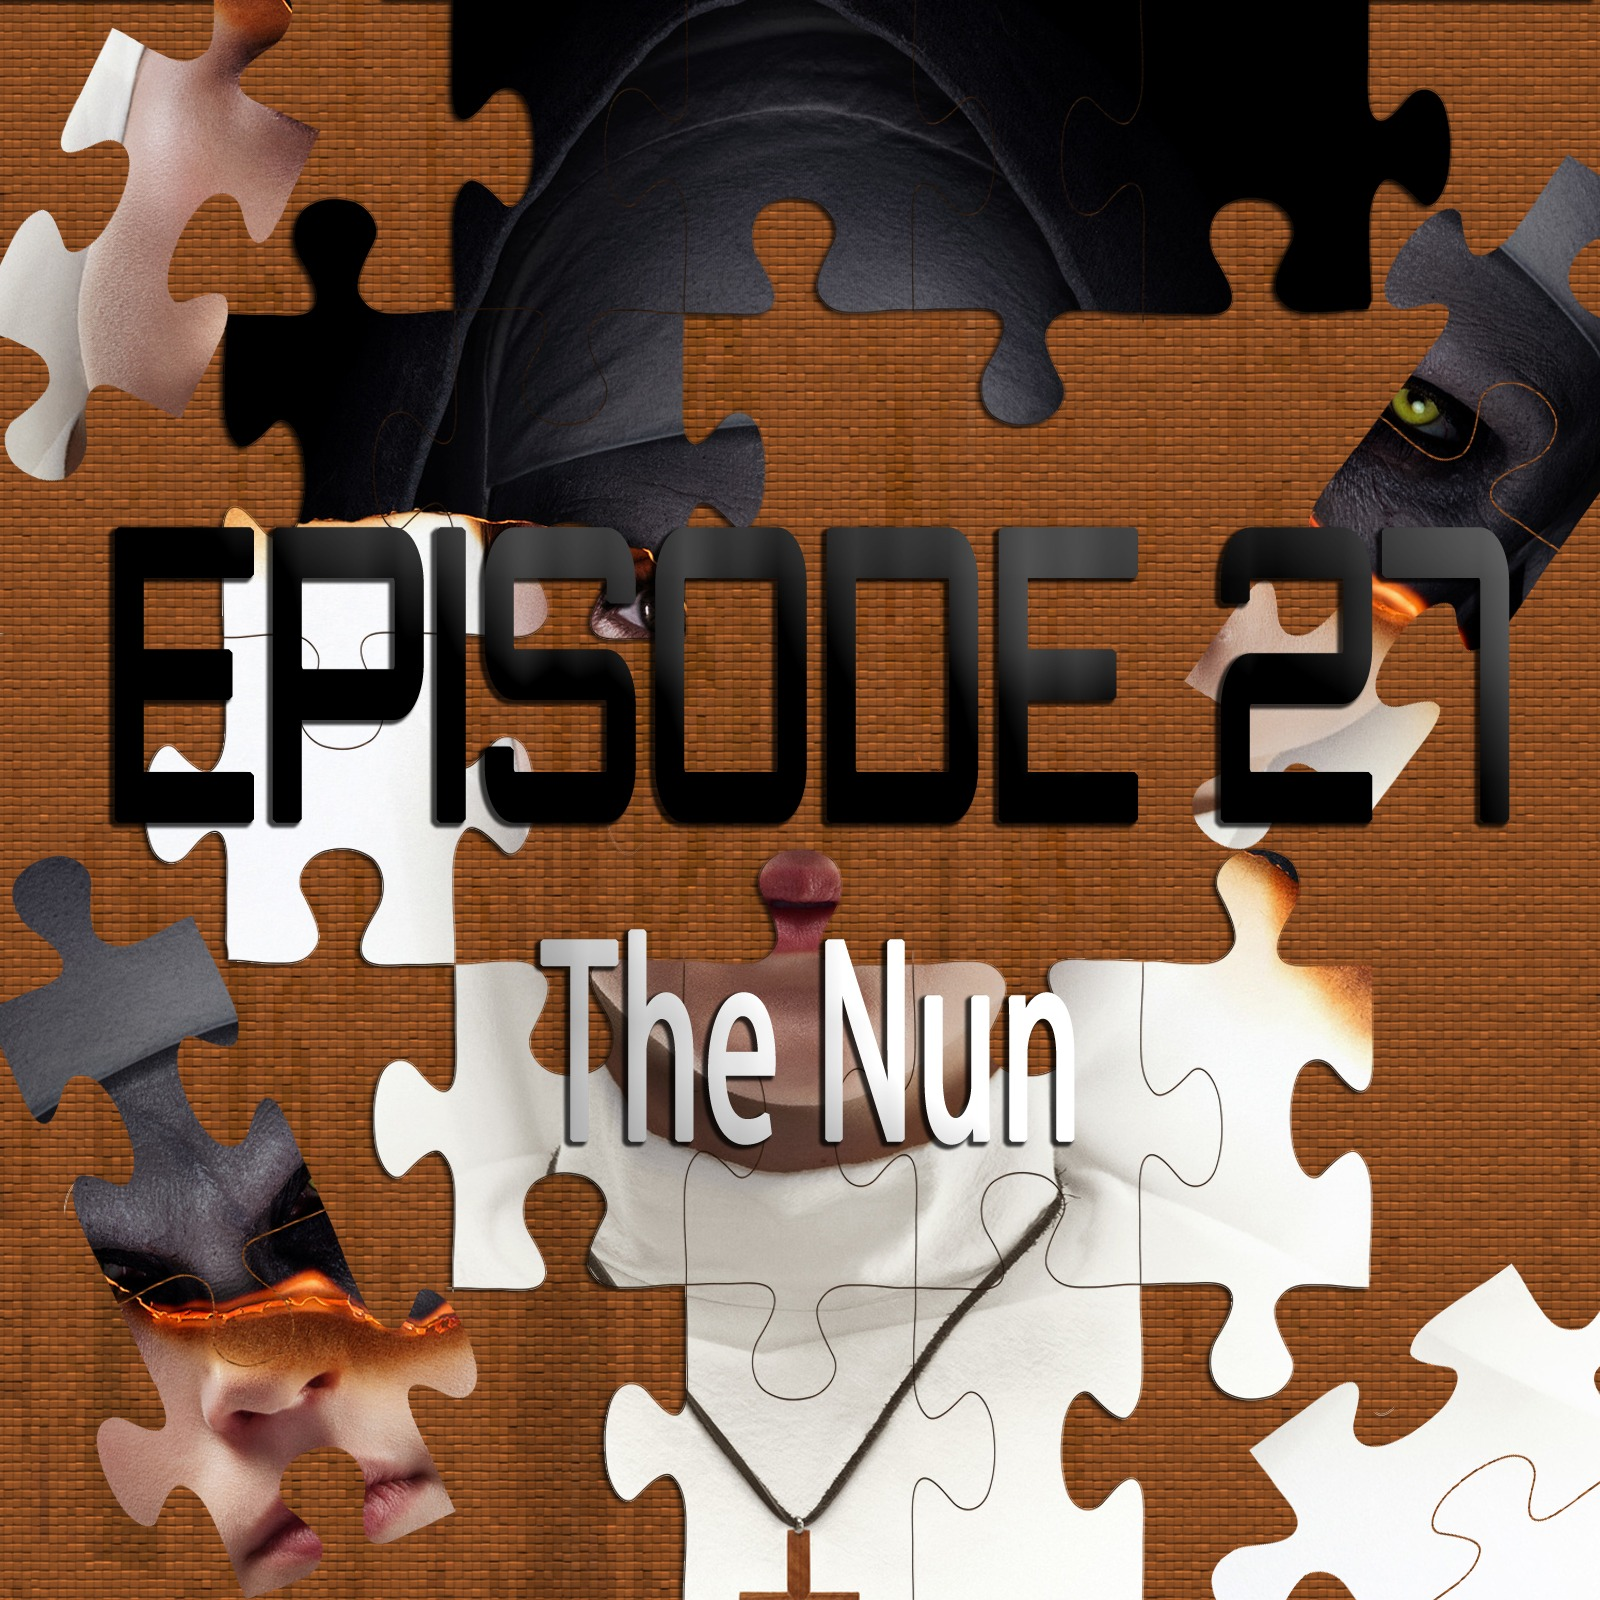 The Nun (Featuring Chad Clinton Freeman)